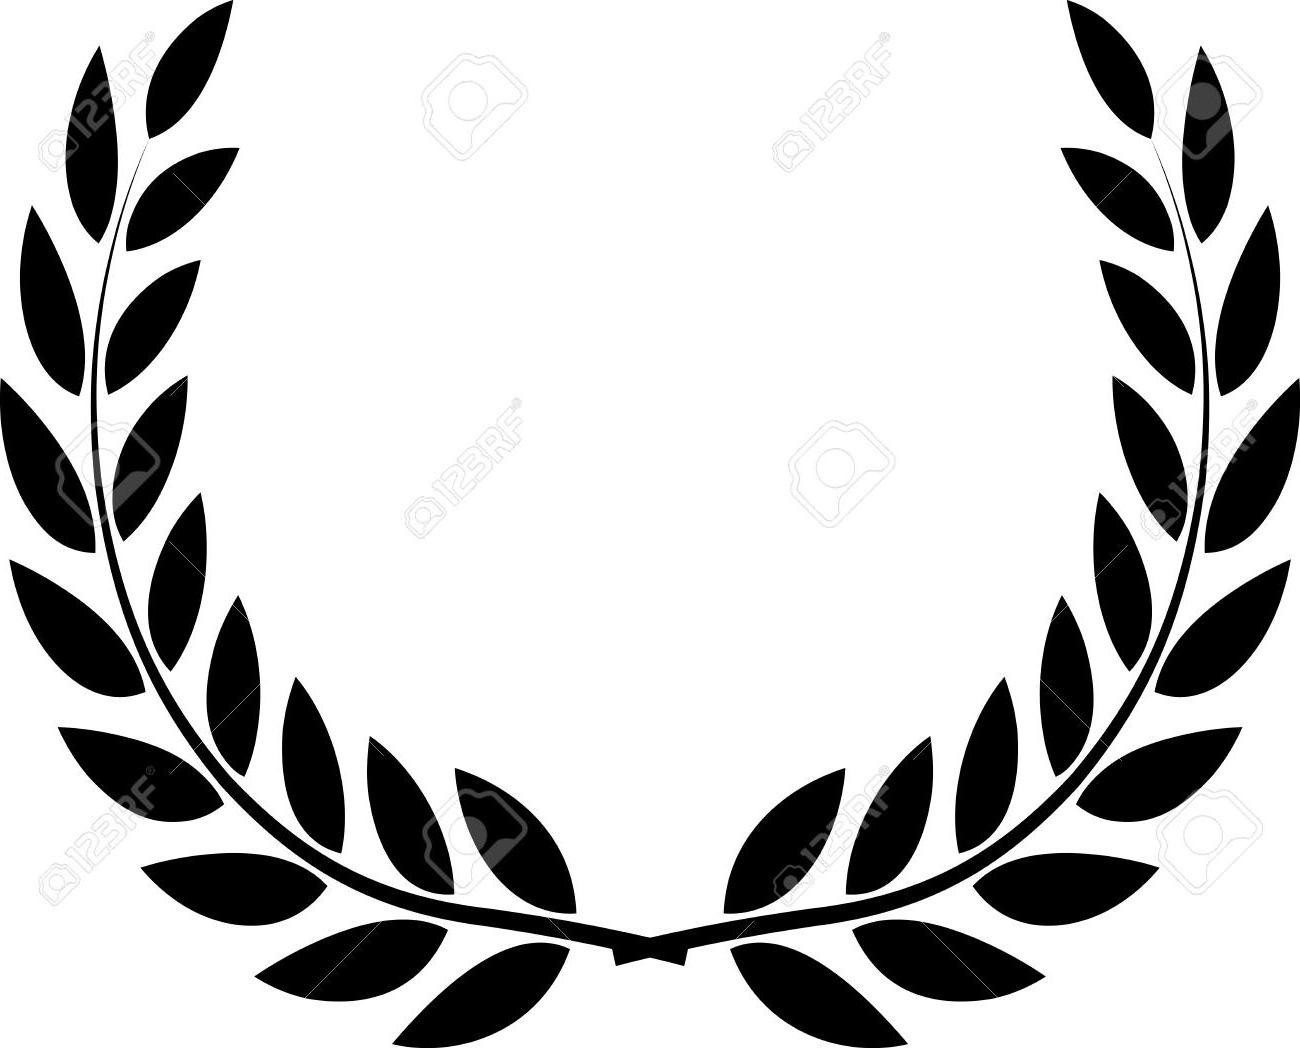 1300x1048 Best Free Award Vector Leaves Image